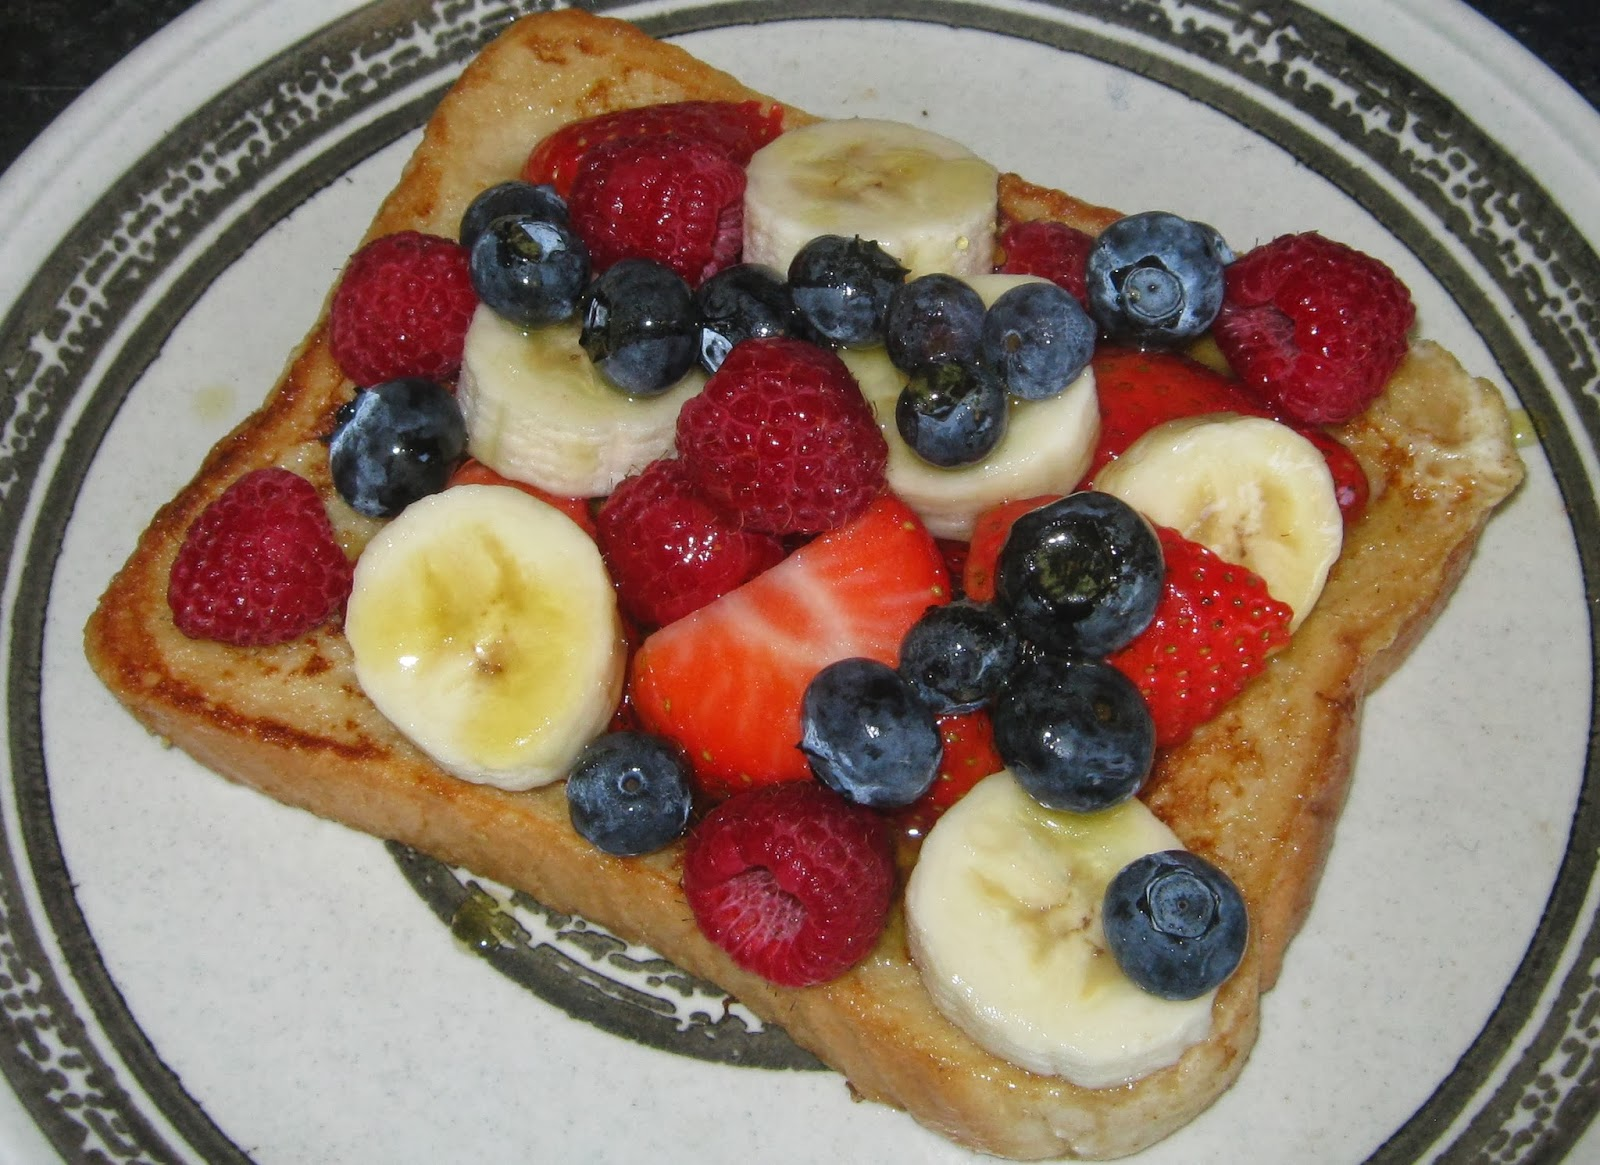 French toast with bananas, blueberries, strawberries and raspberries